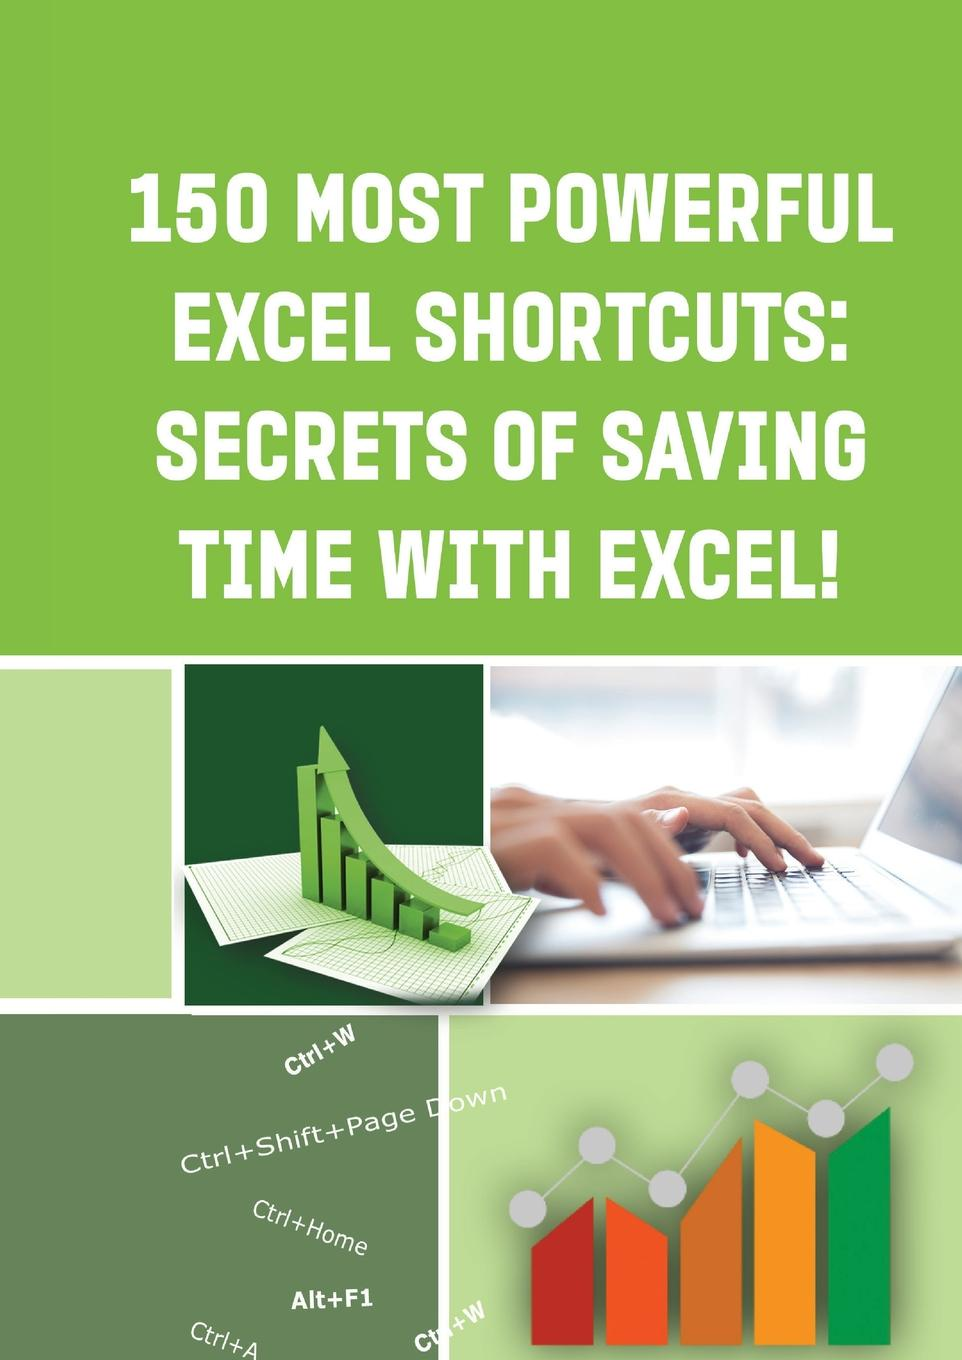 Andrei Besedin. 150 MOST POWERFUL EXCEL SHORTCUTS. : SECRETS of SAVING TIME WITH EXCEL!